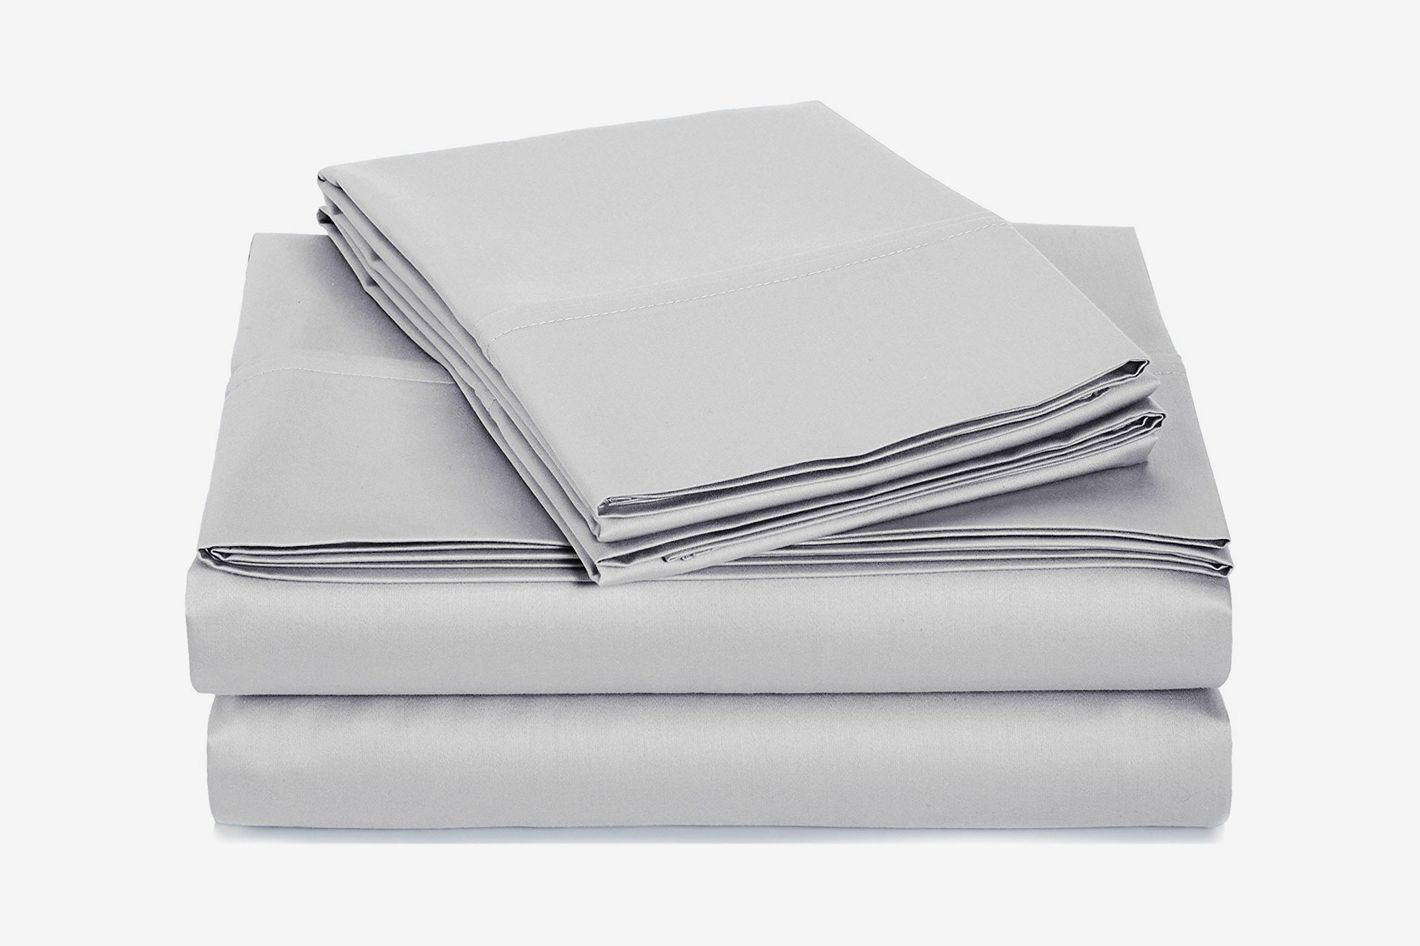 AmazonBasics 400 Thread Count Sheet Set, Sateen Finish, Full